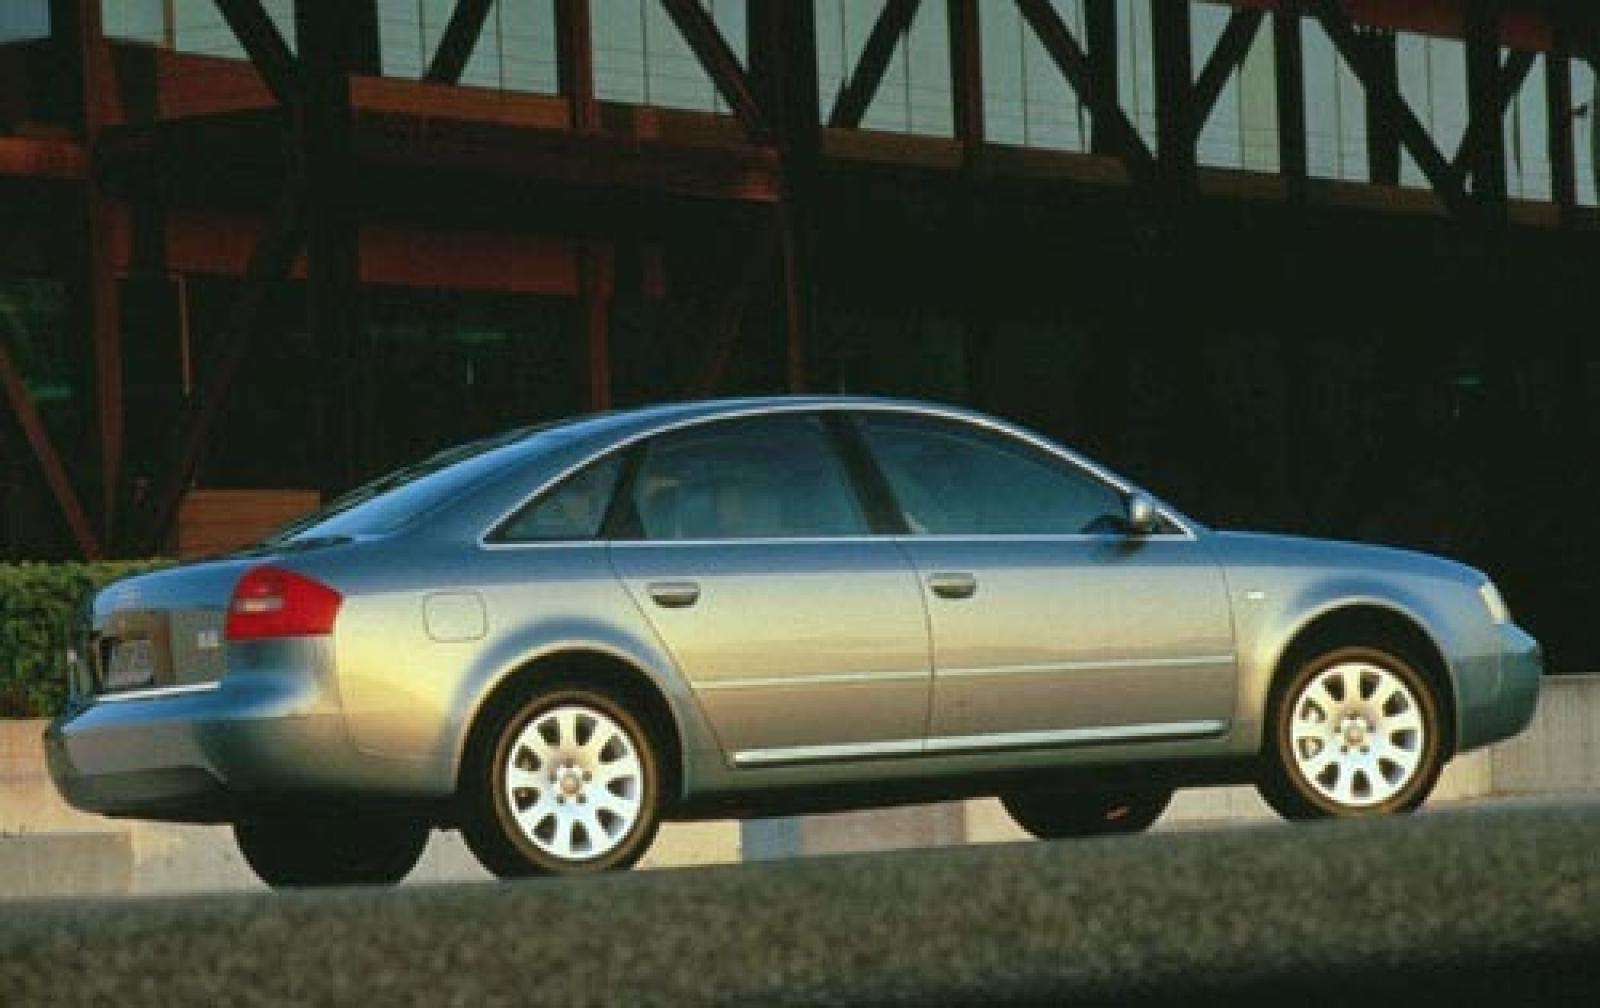 2001 audi a6 information and photos zombiedrive. Black Bedroom Furniture Sets. Home Design Ideas